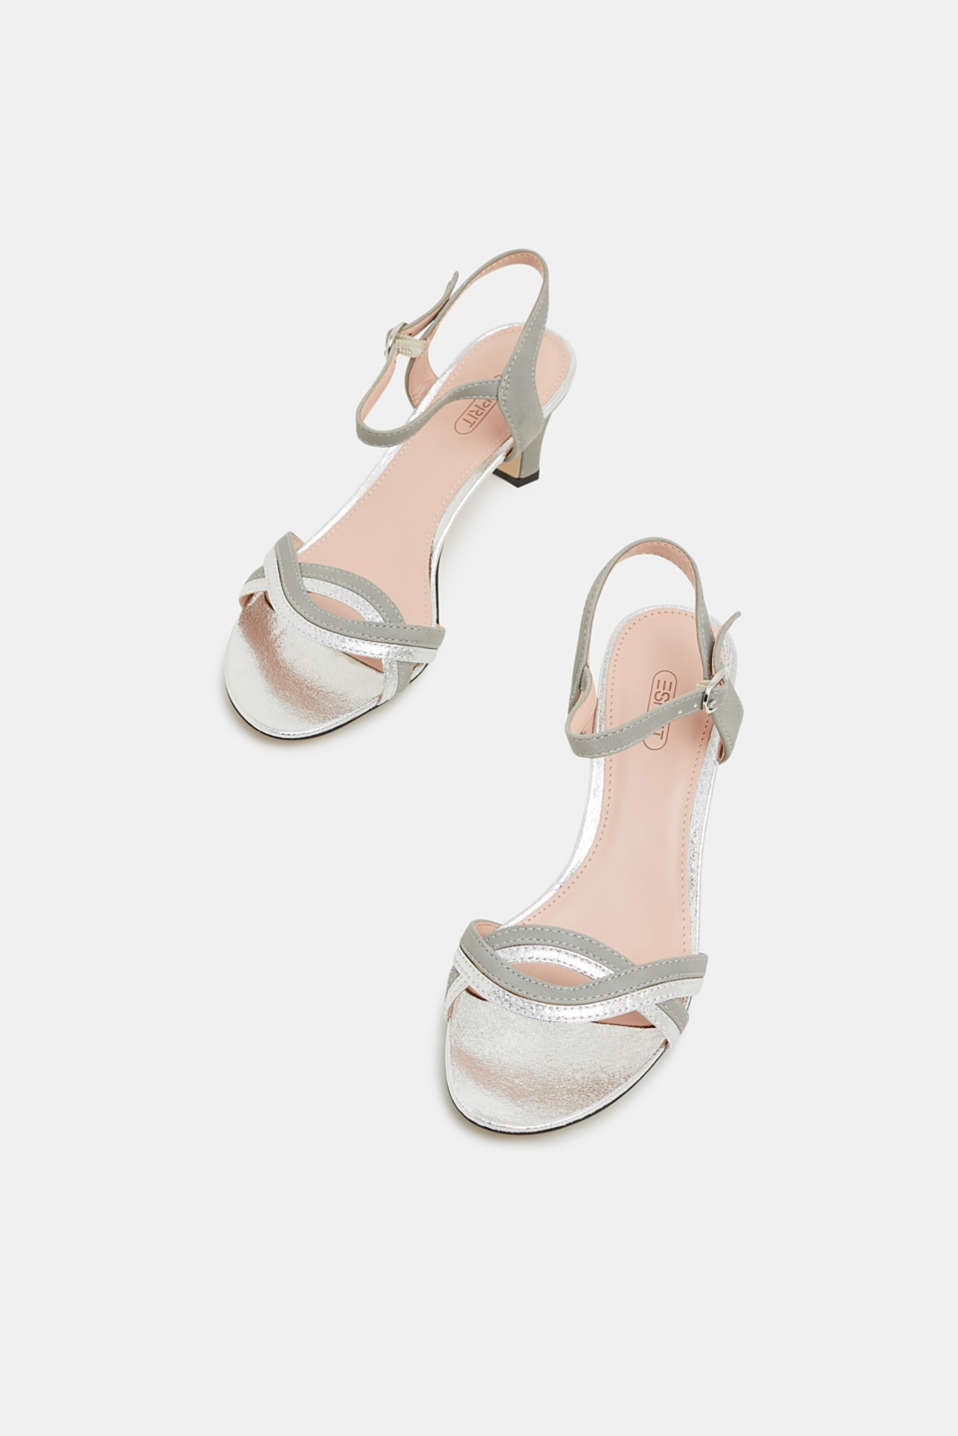 Faux leather sandals with metallic accents, SILVER, detail image number 6